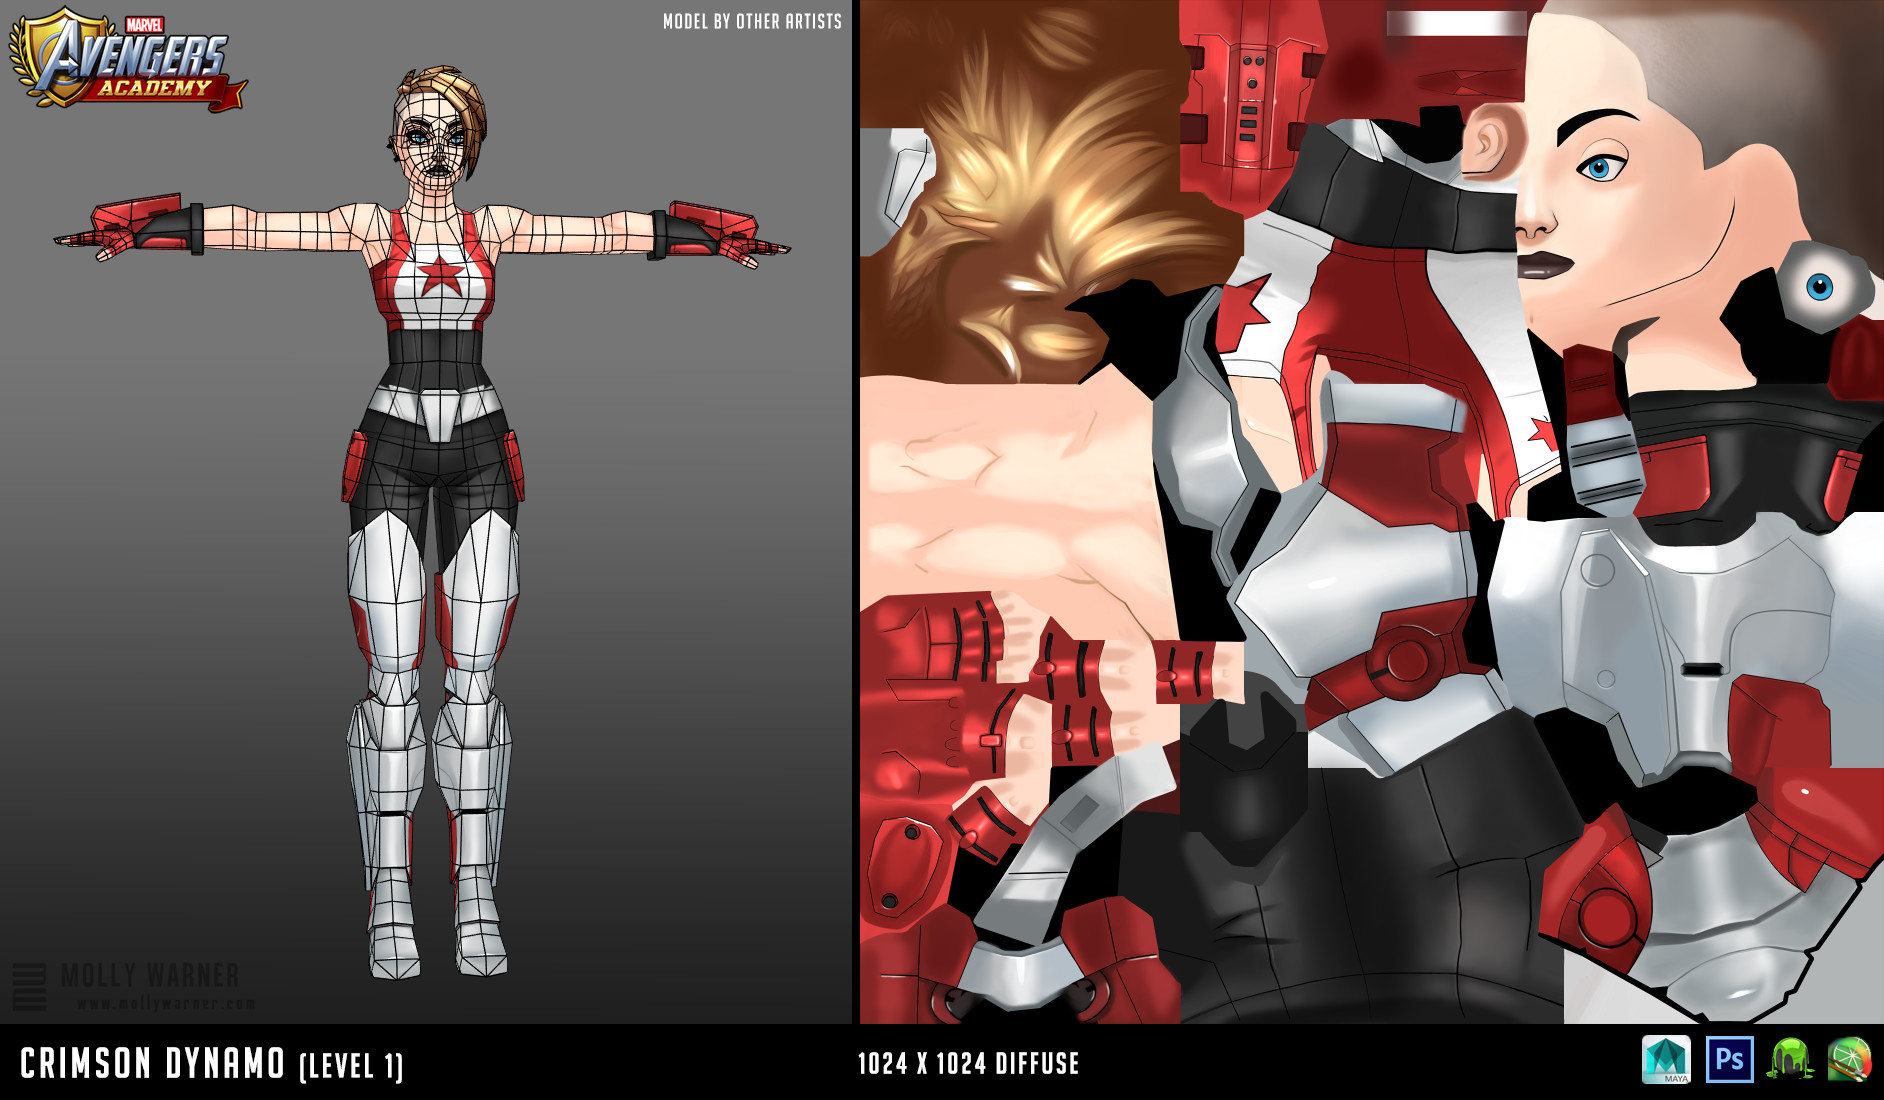 Molly warner 4 crimson dynamo l1 textures wireframe